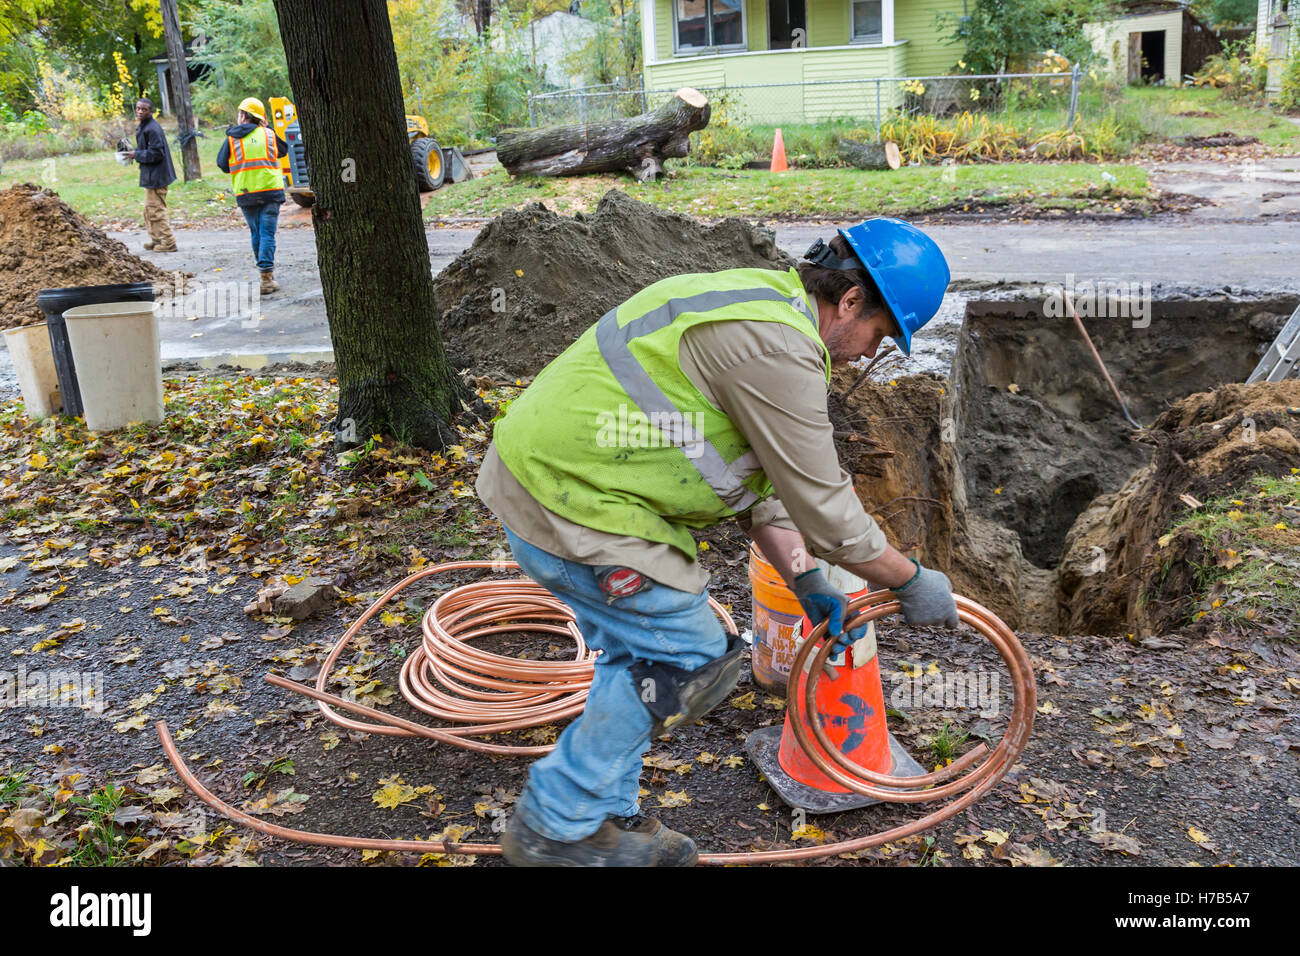 Flint, Michigan, USA. 3rd November, 2016. Large scale replacement of lead and galvanized steel water service lines - Stock Image